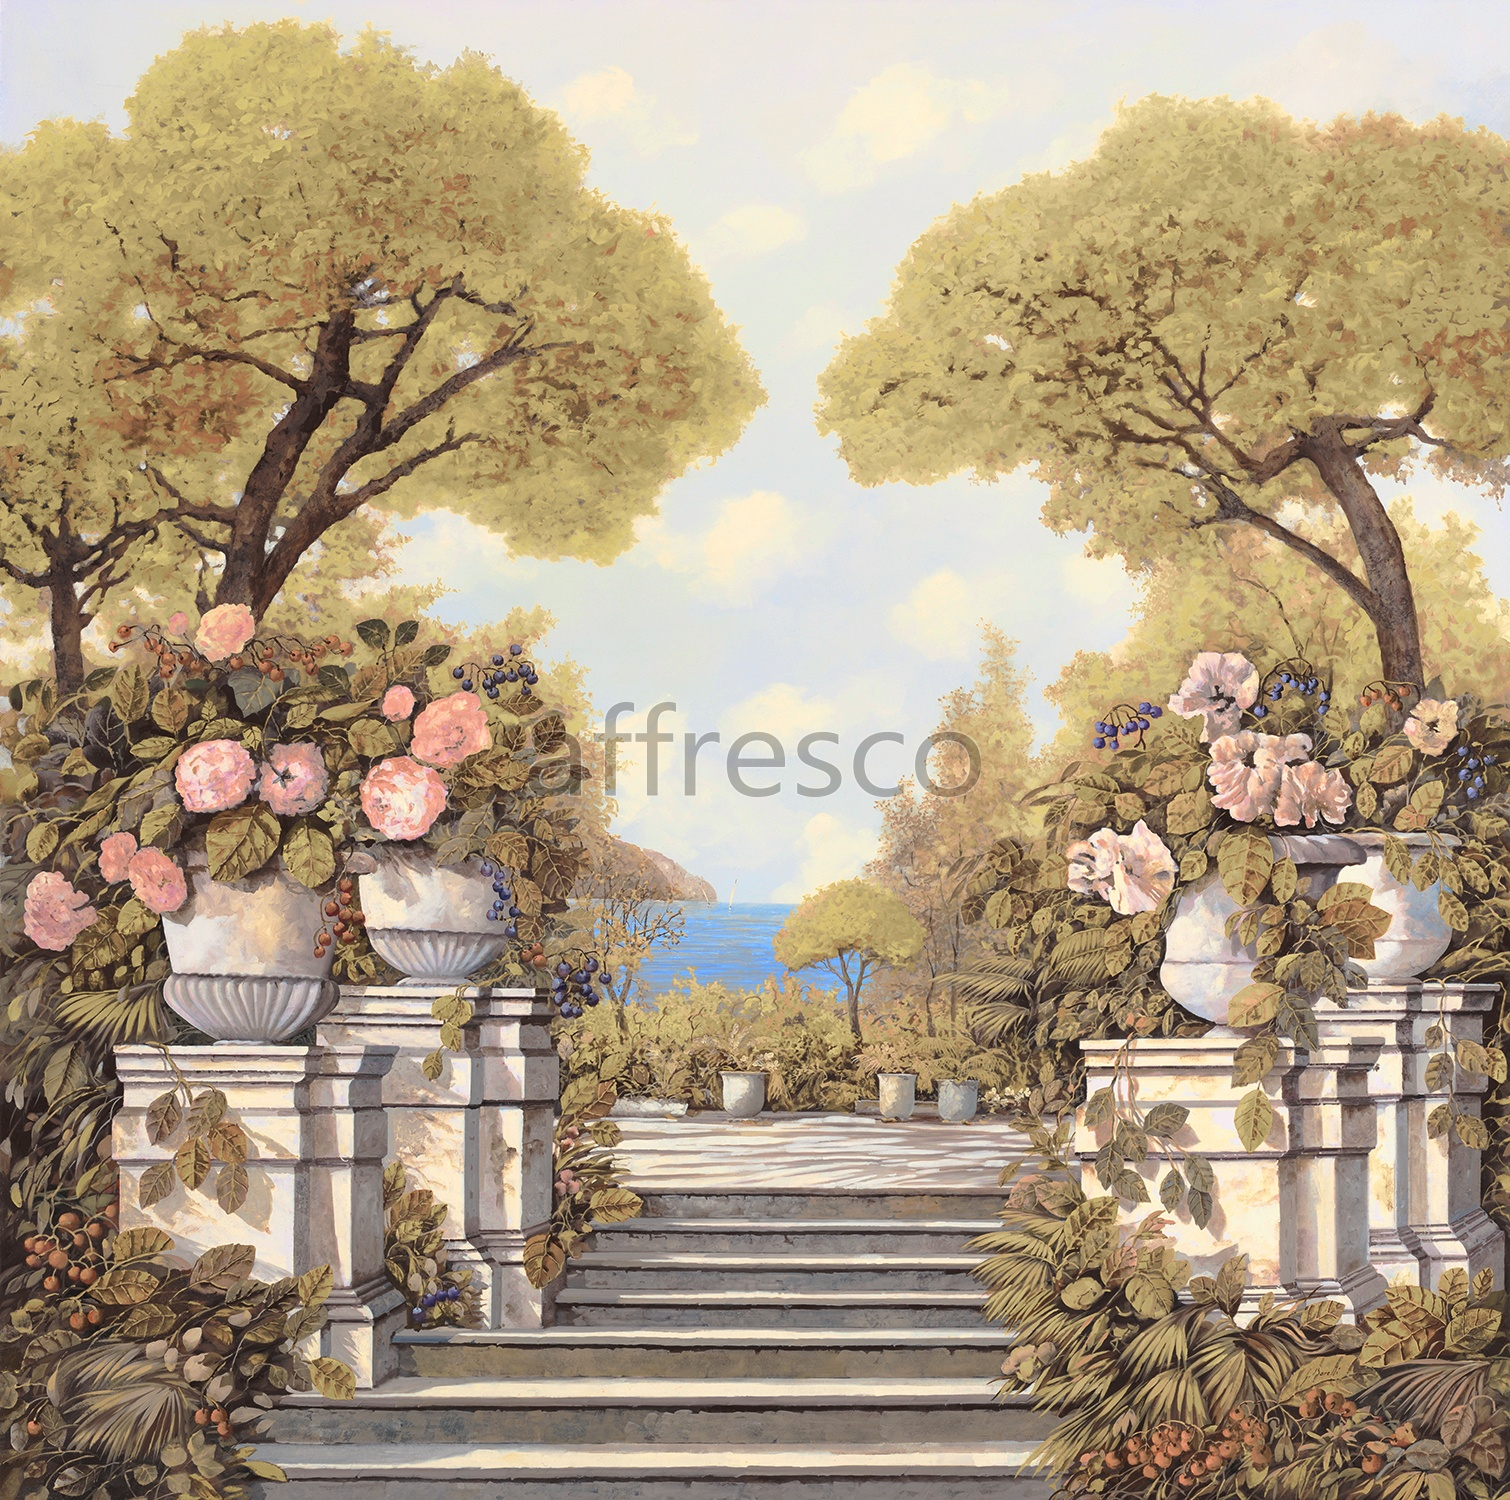 6731 | Picturesque scenery | Stairs to a garden | Affresco Factory